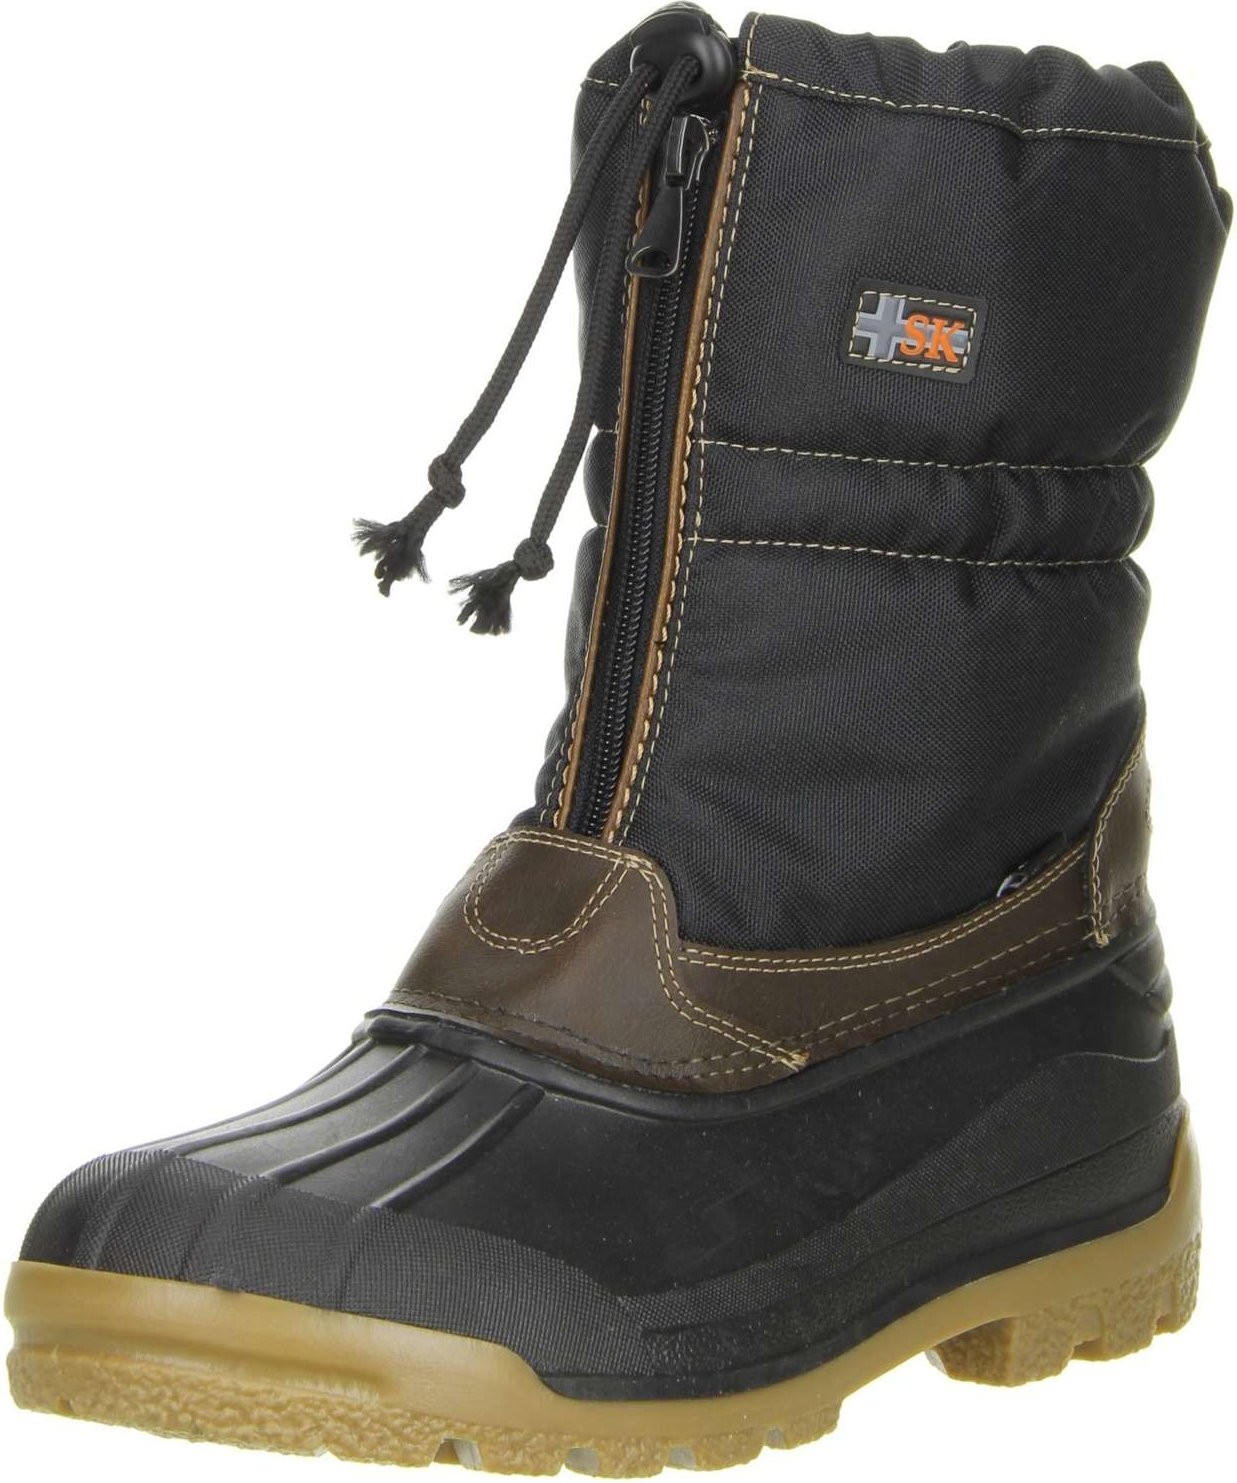 vista canada polar damen herren winterstiefel snowboots thermo tex innenschuhe b ebay. Black Bedroom Furniture Sets. Home Design Ideas